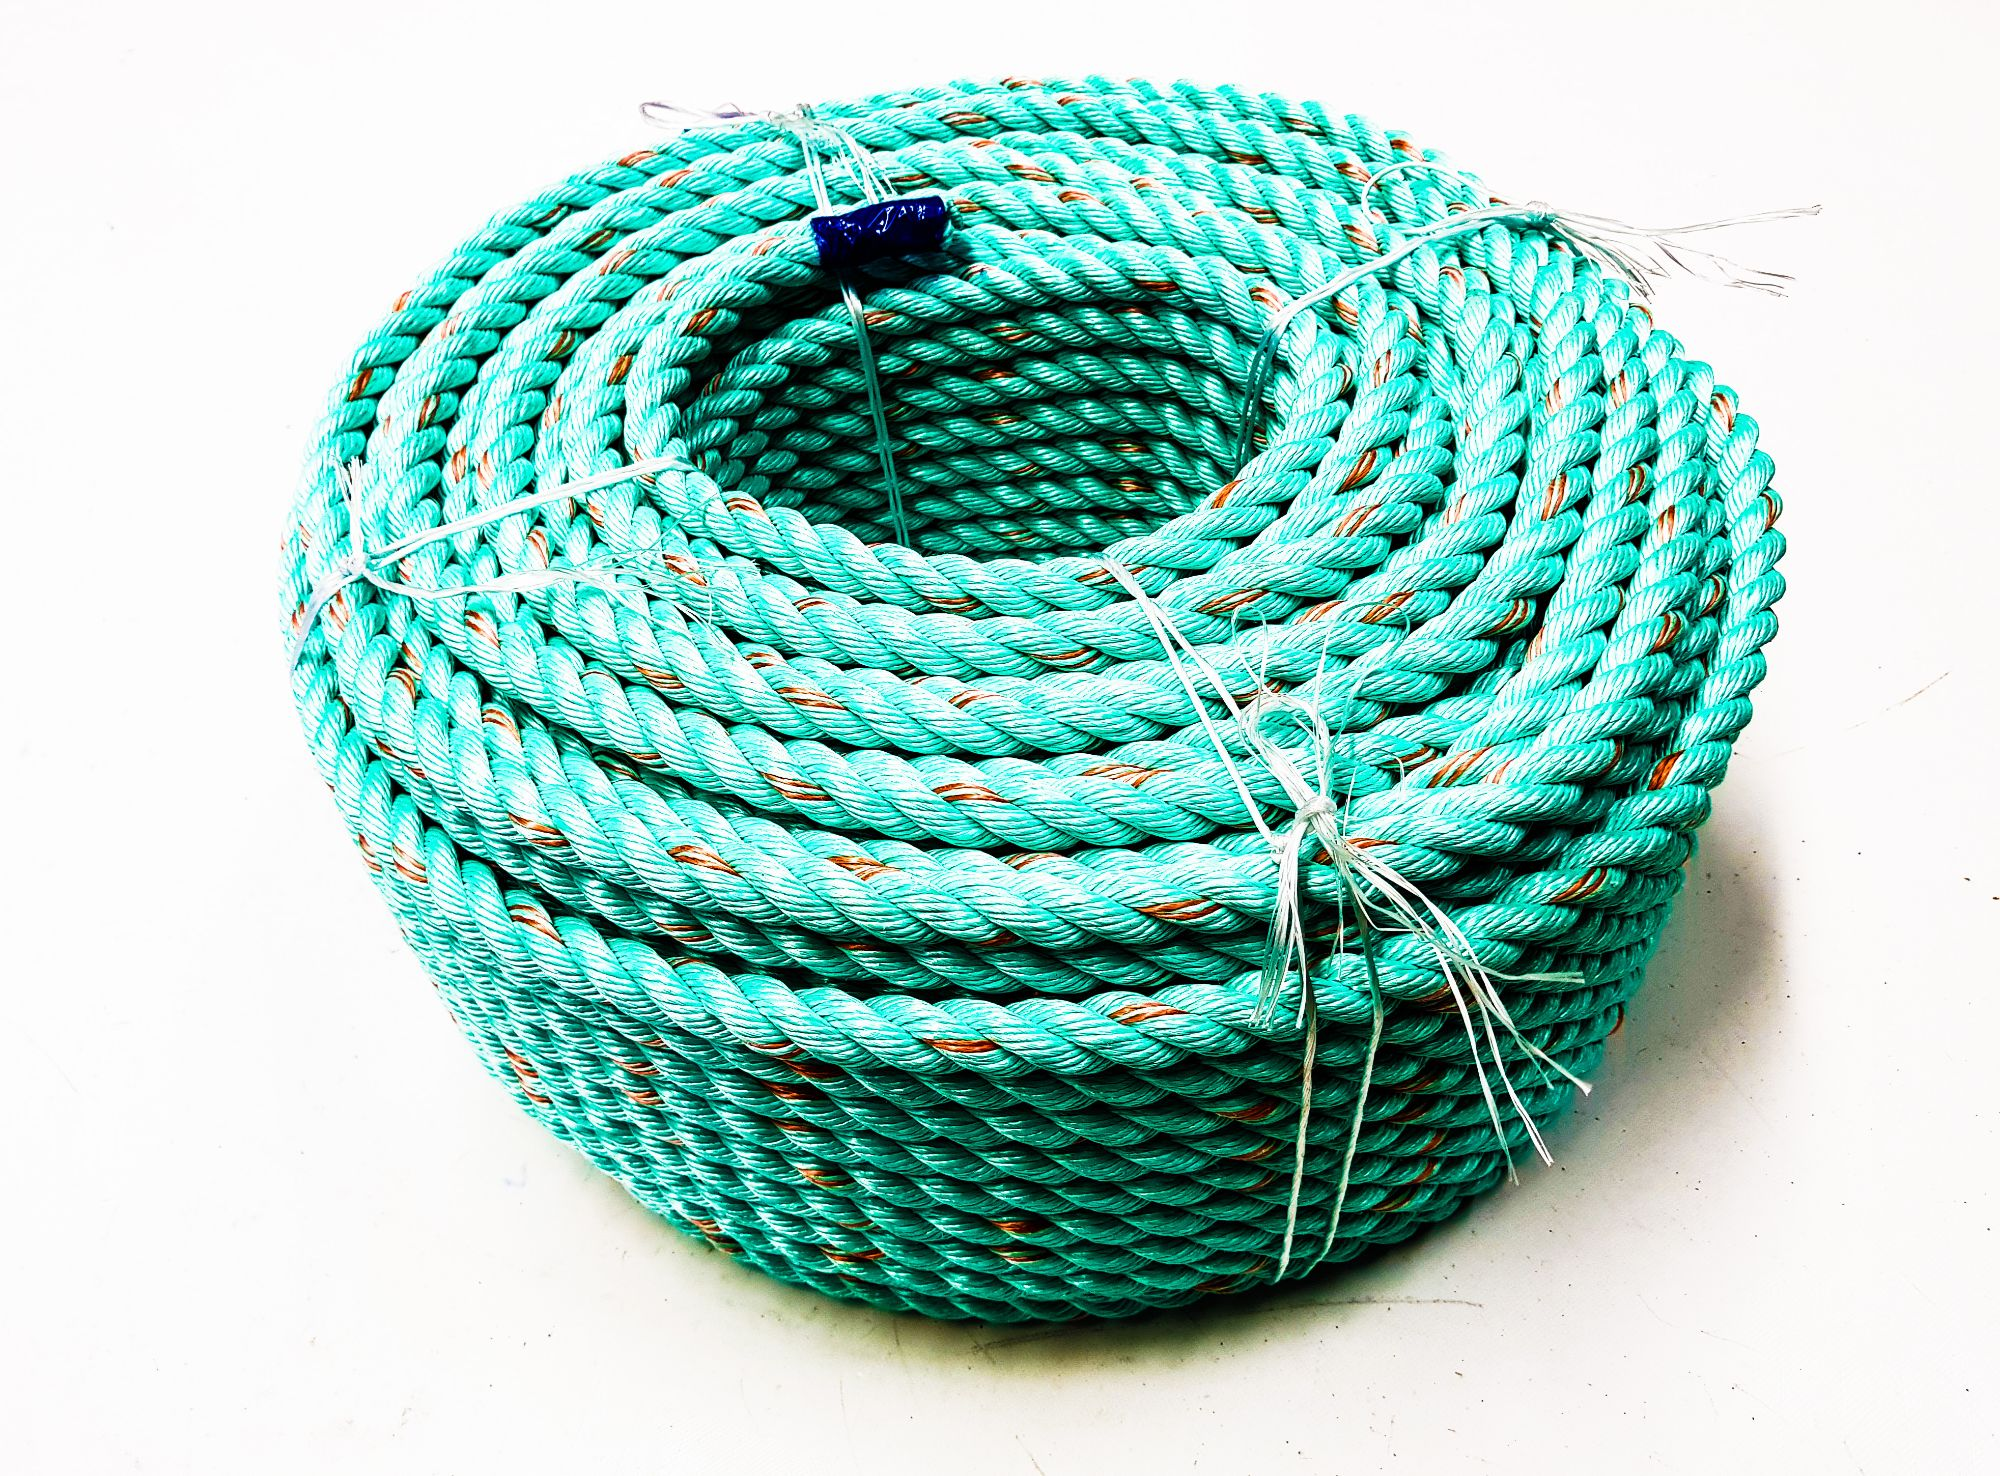 Anchor Warp Rope For Sale in Perth, Western Australia